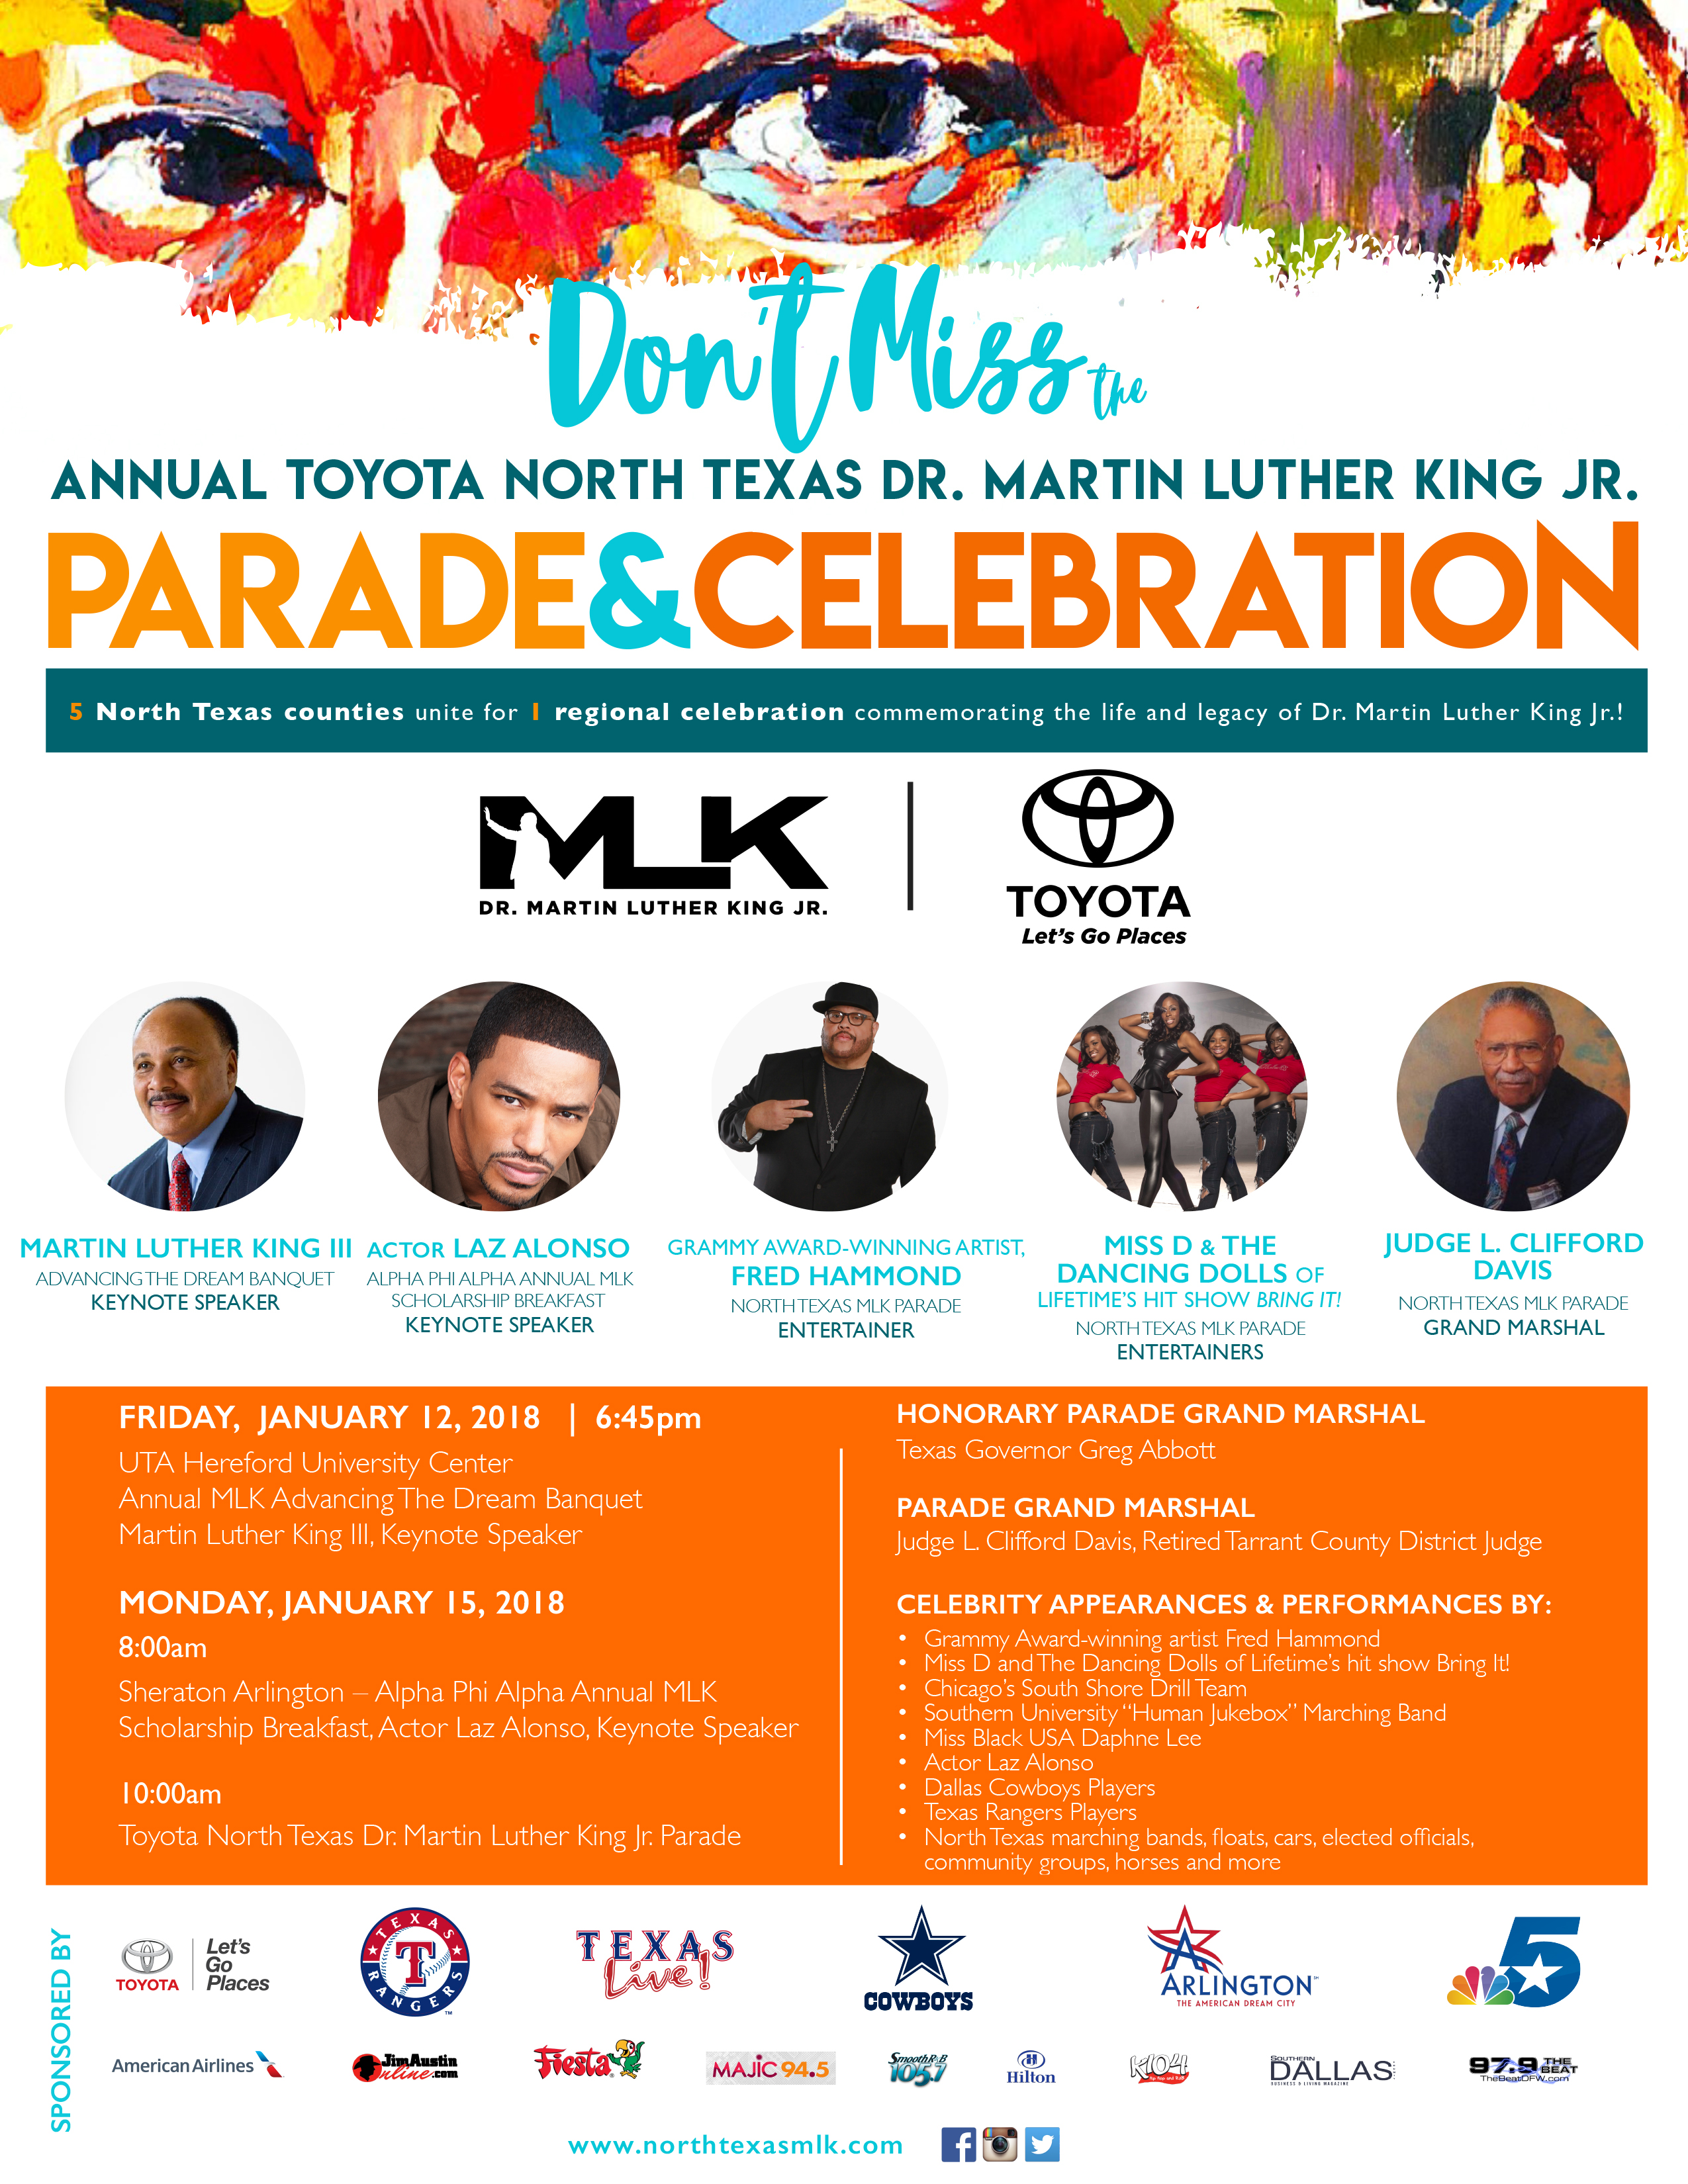 Annual Toyota North Texas Dr. Martin Luther King Jr Parade & Celebration